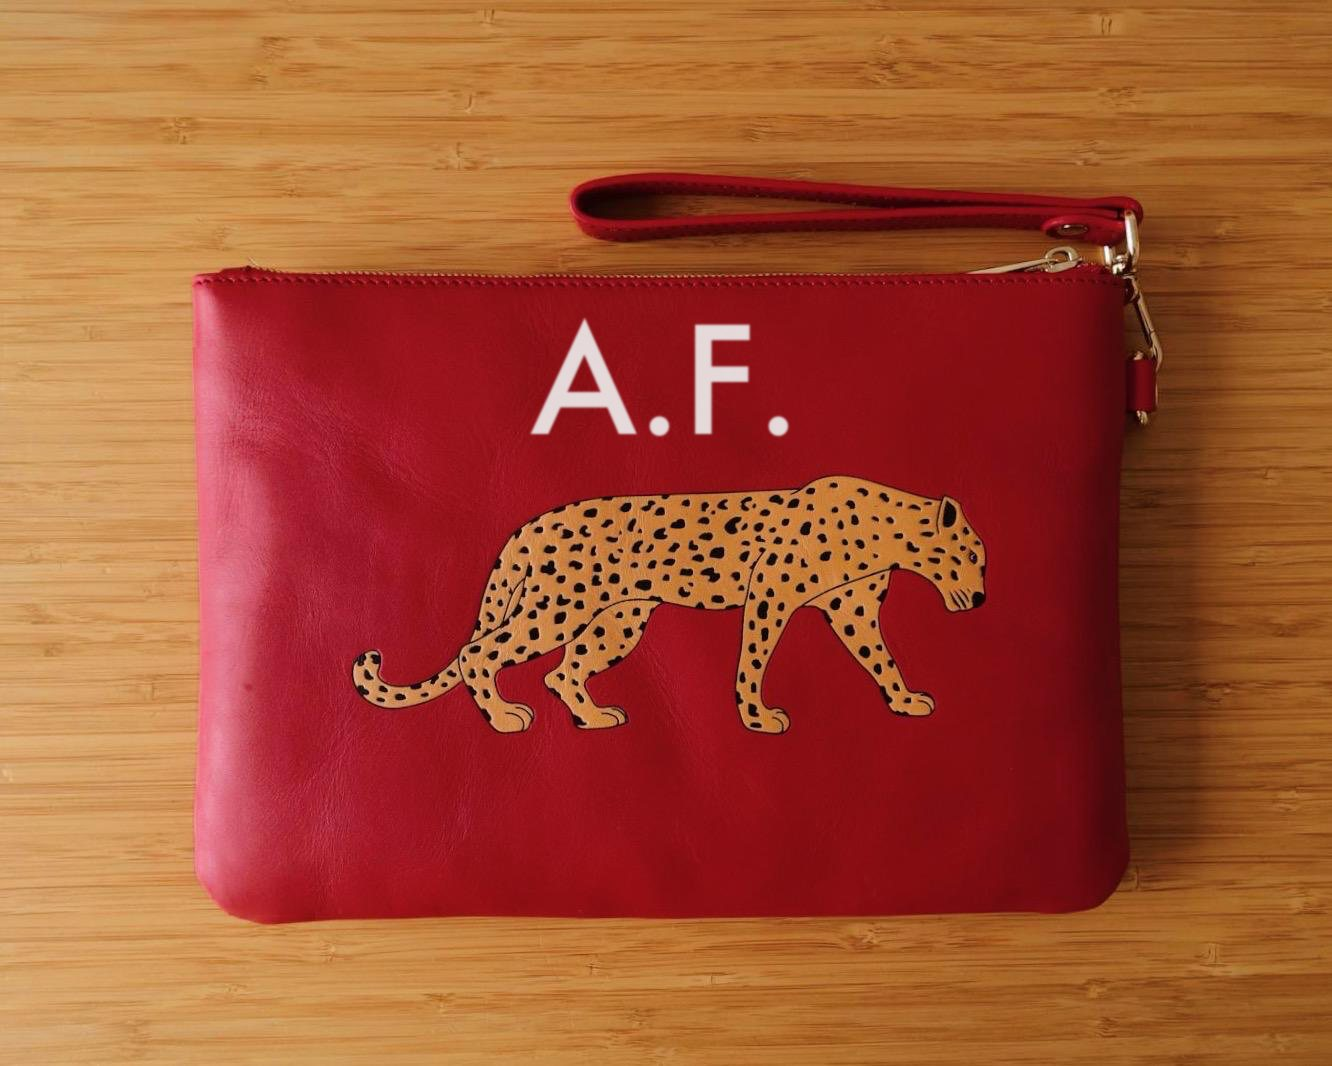 Red Leopard Clutch Bag 1